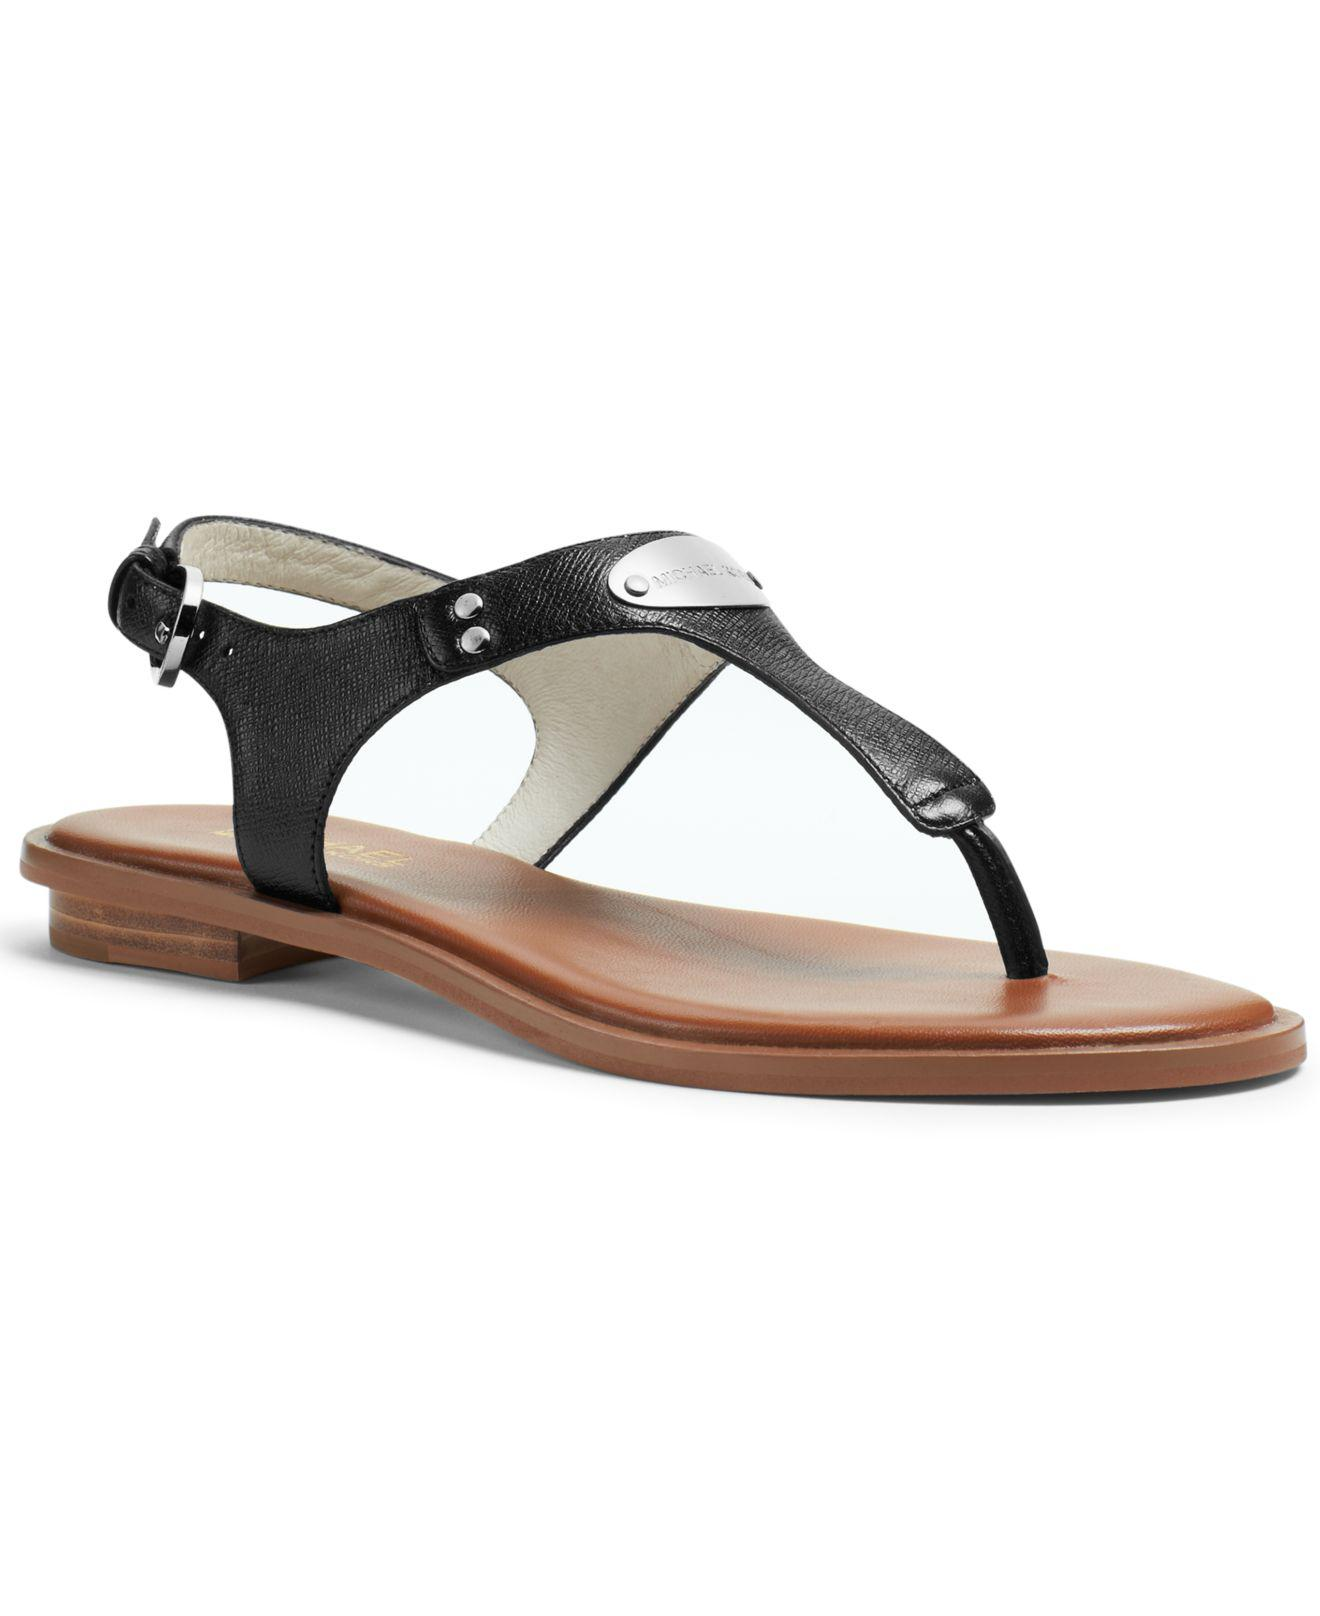 9f715884fad1 Michael Kors Mk Plate Flat Thong Sandals in Black - Lyst